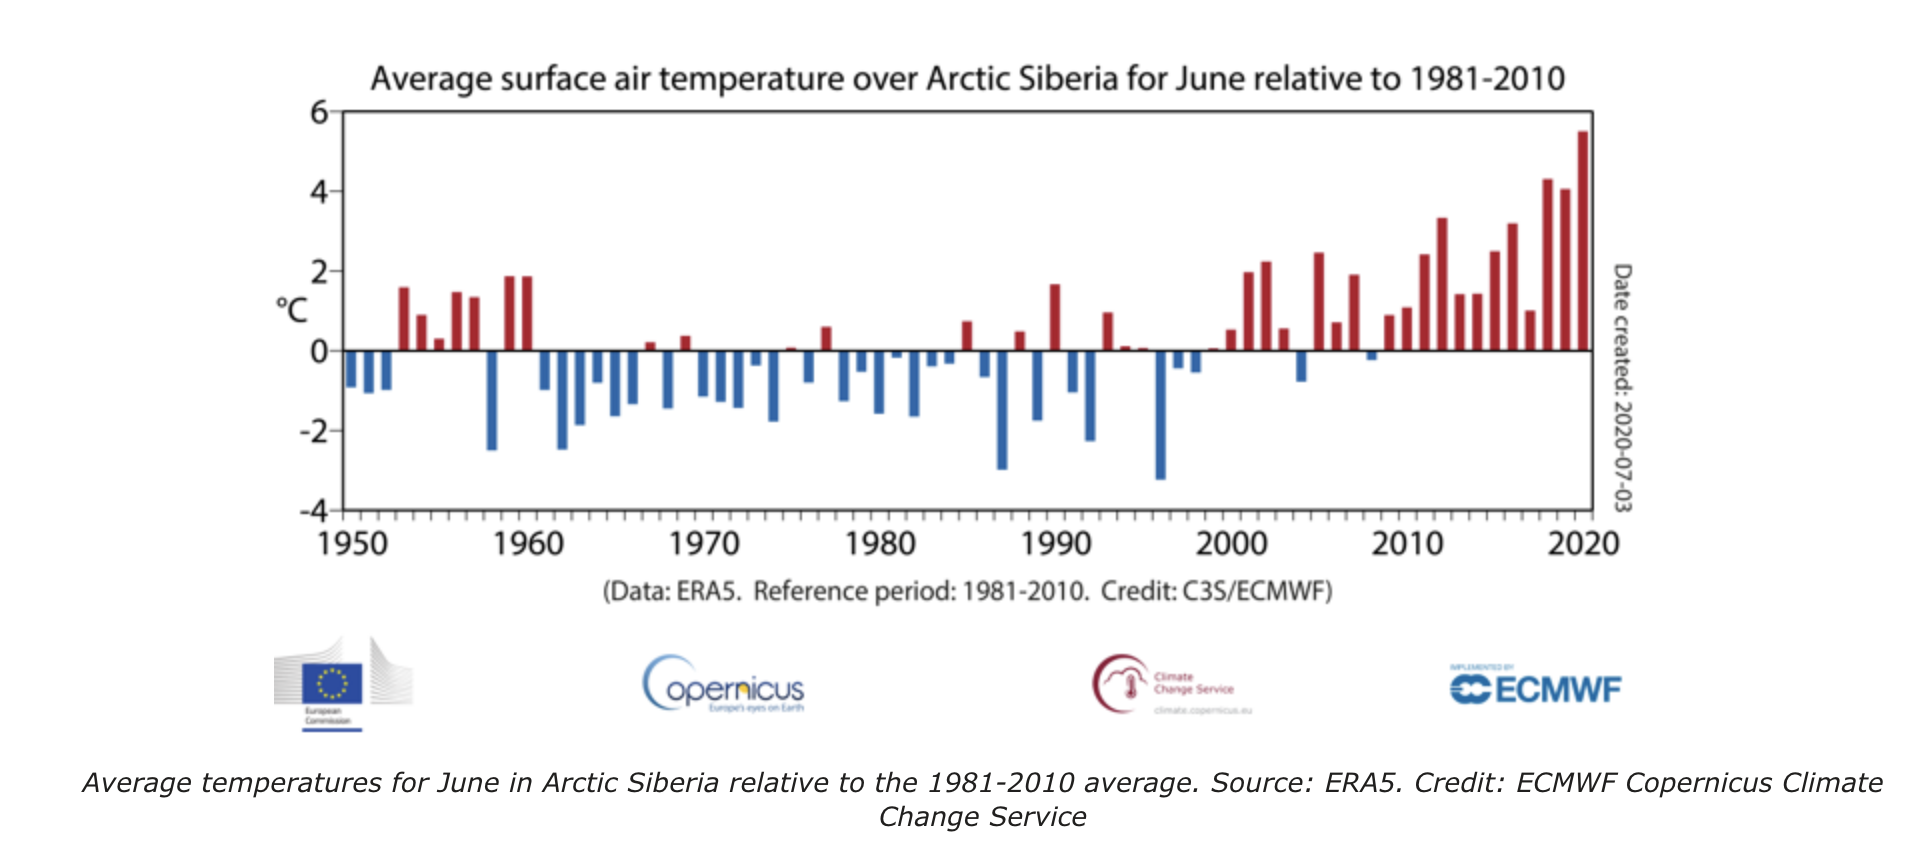 Temperatures in Siberian Arctic June 2020